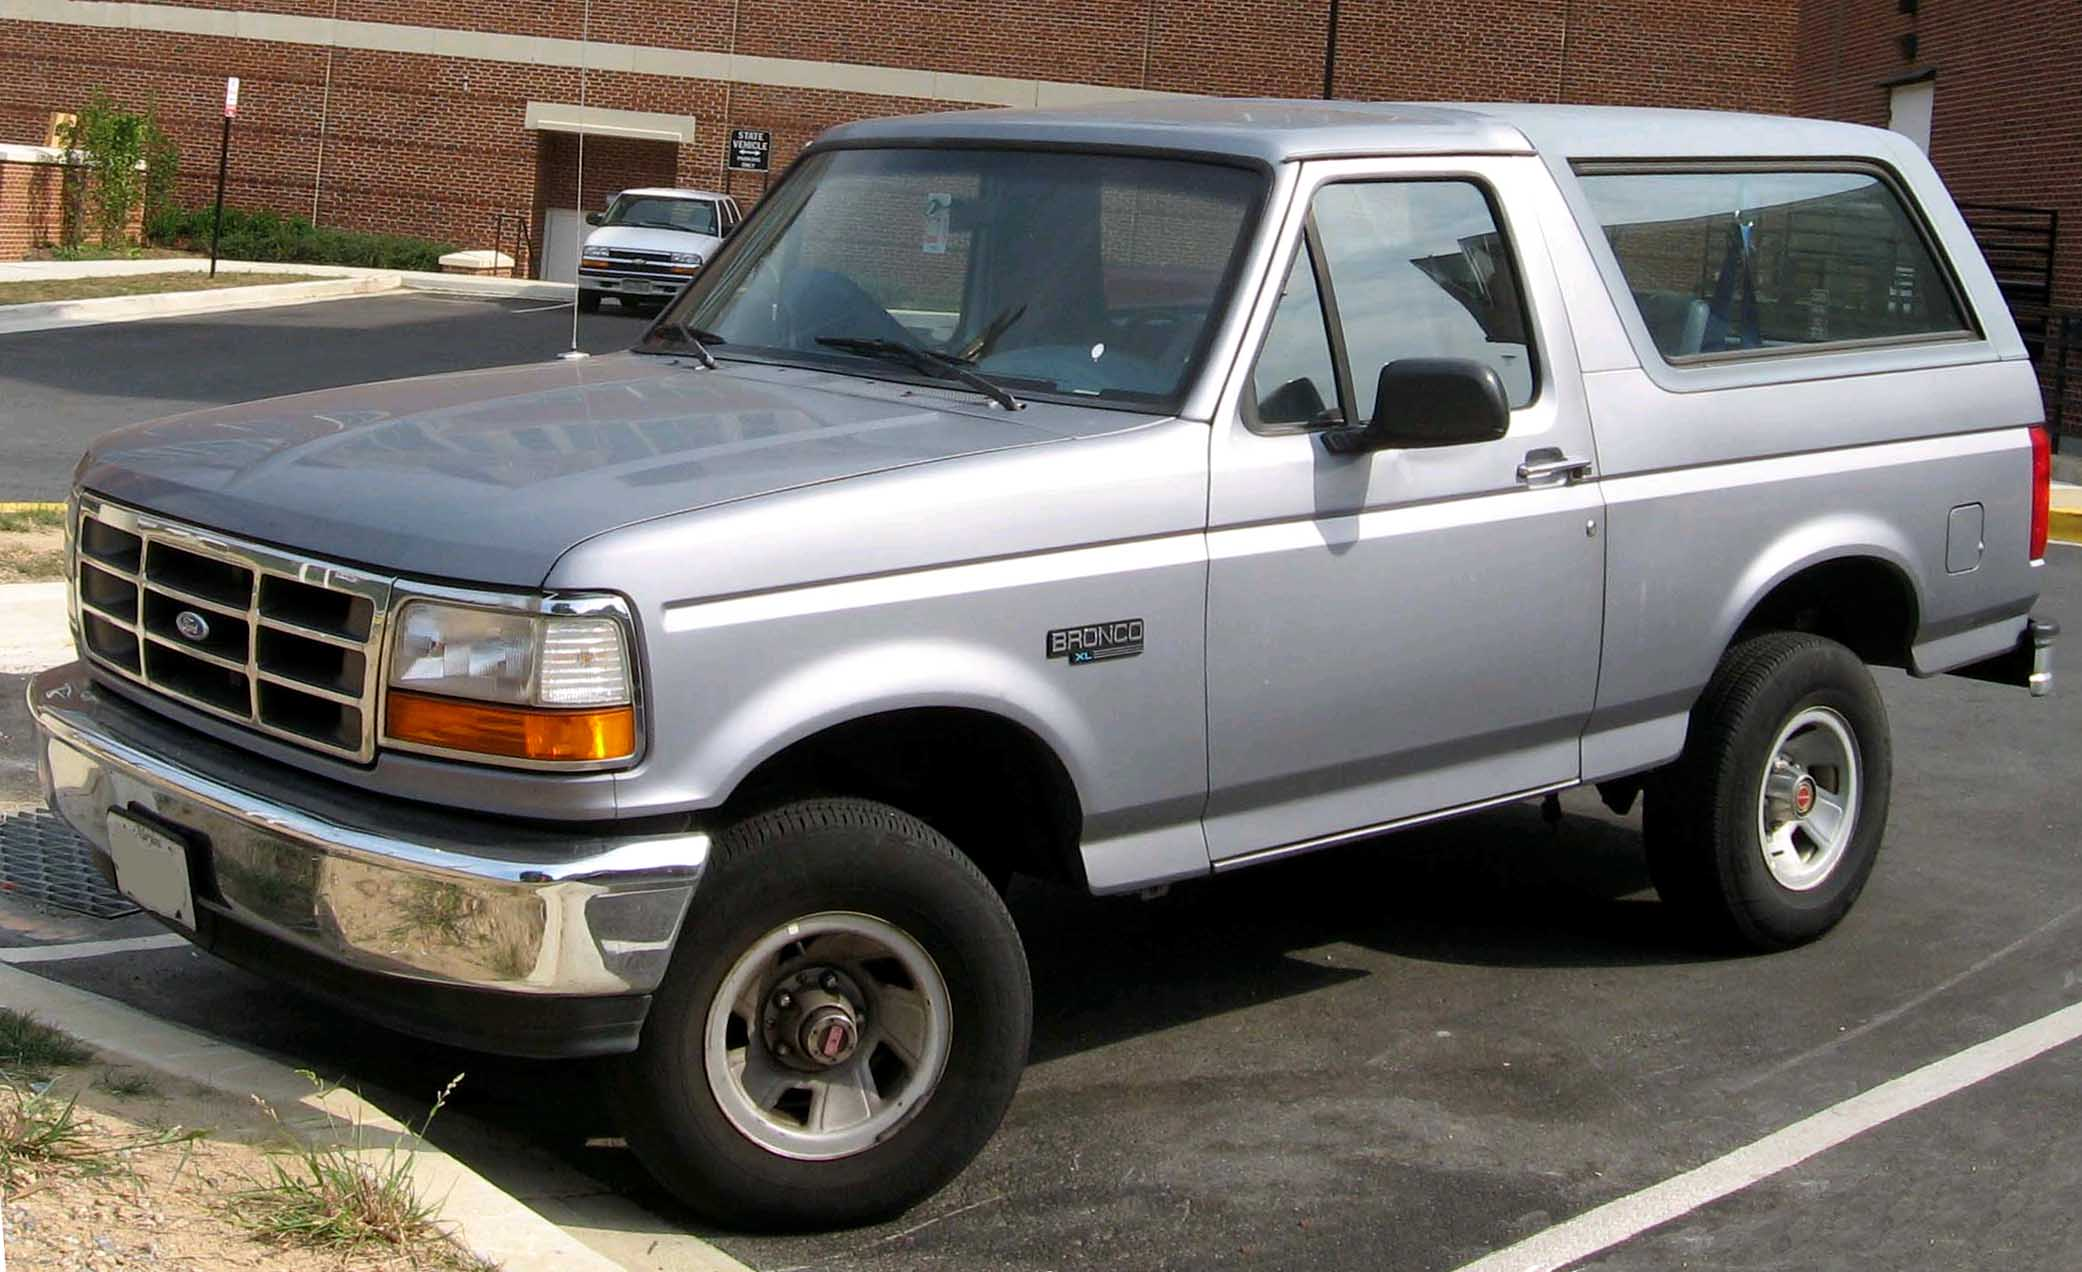 Ford Bronco 1993 photo - 3